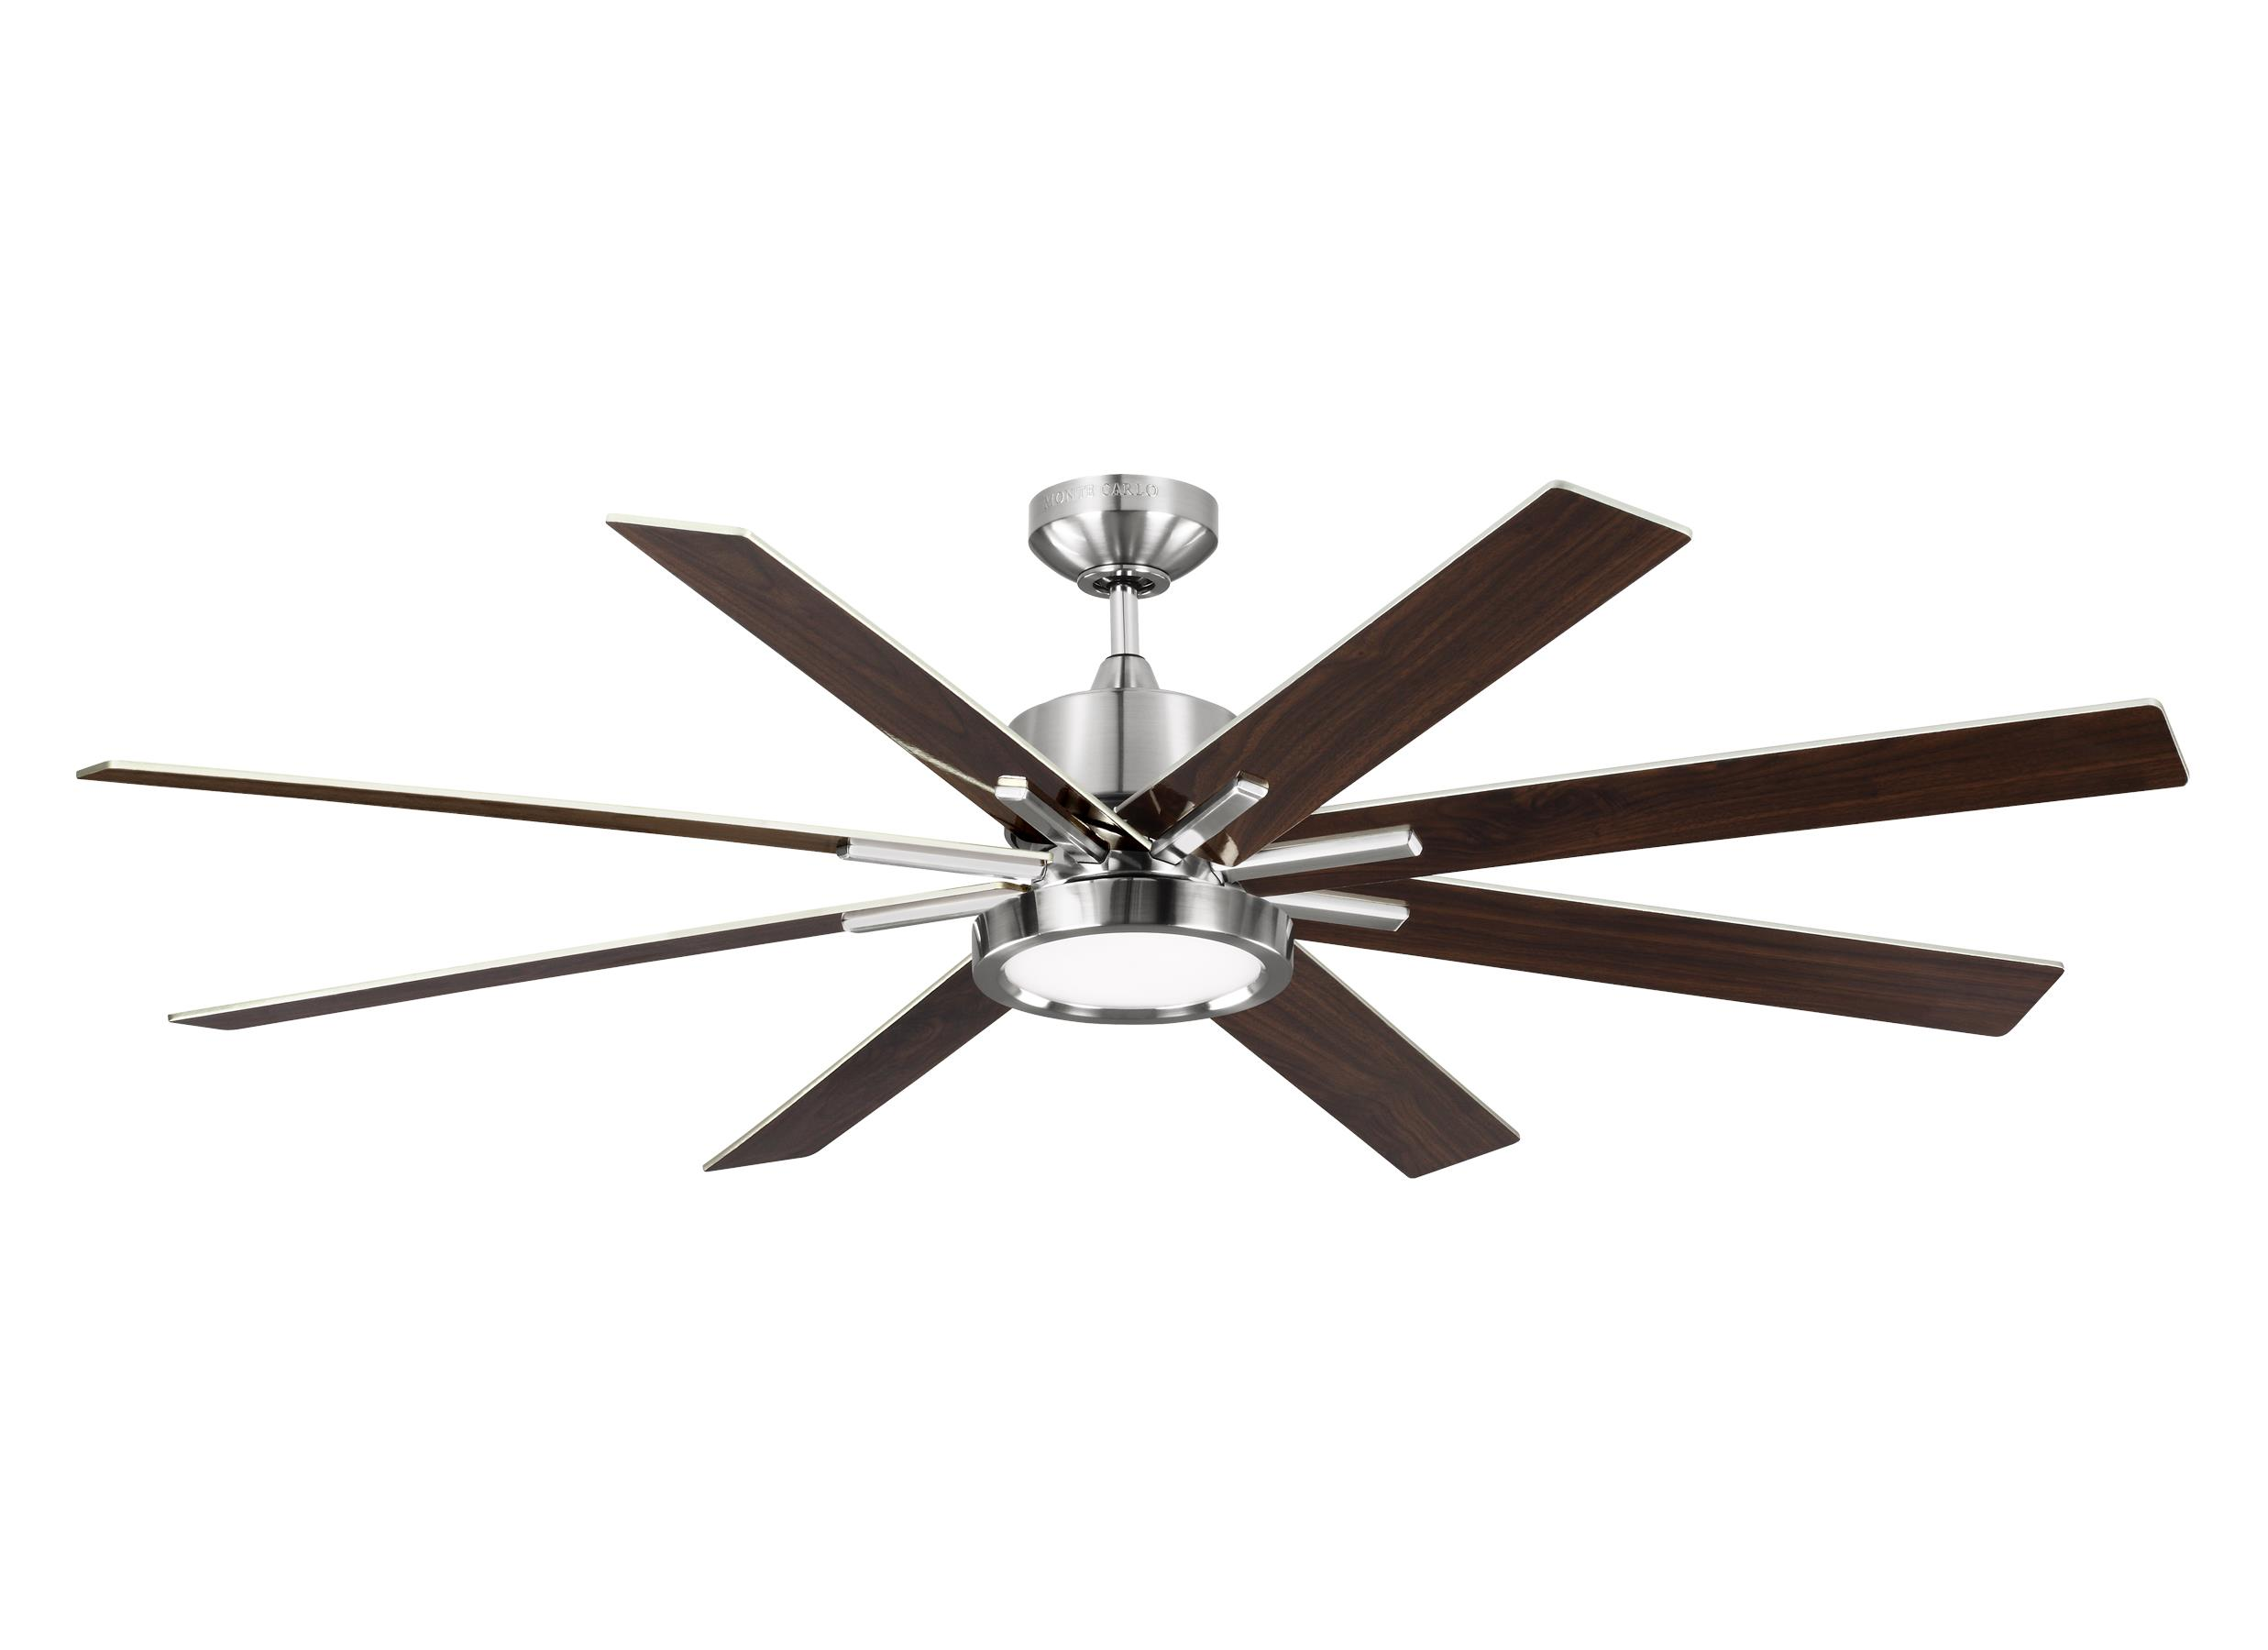 Silver nickel chrome ceiling fans by the monte carlo fan company 8eedr60bsd mozeypictures Gallery